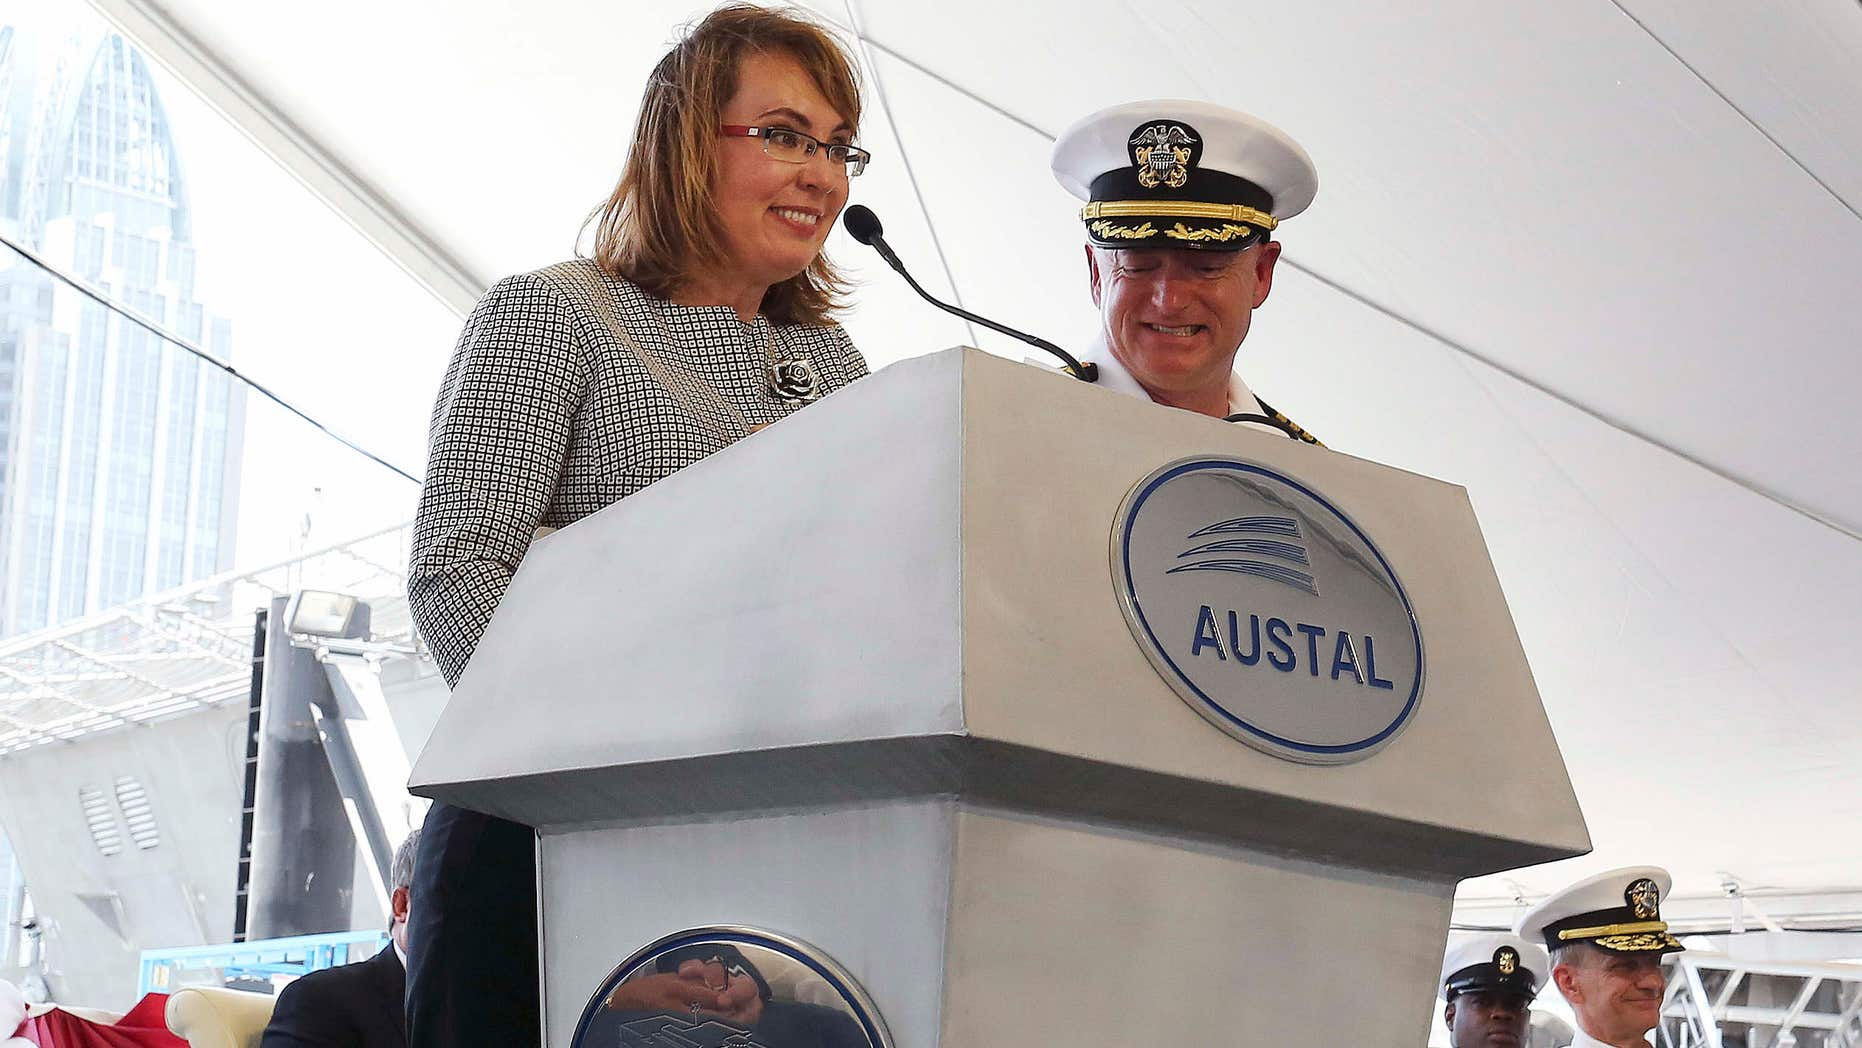 June 13, 2015: Former U.S. Rep. Gabrielle Giffords of Arizona delivers remarks with her husband, retired U.S. Navy Capt. Mark Kelly, by her side as the USS Gabrielle Giffords, a littoral combat ship built at the Austal USA shipyards is christened during a ceremony.